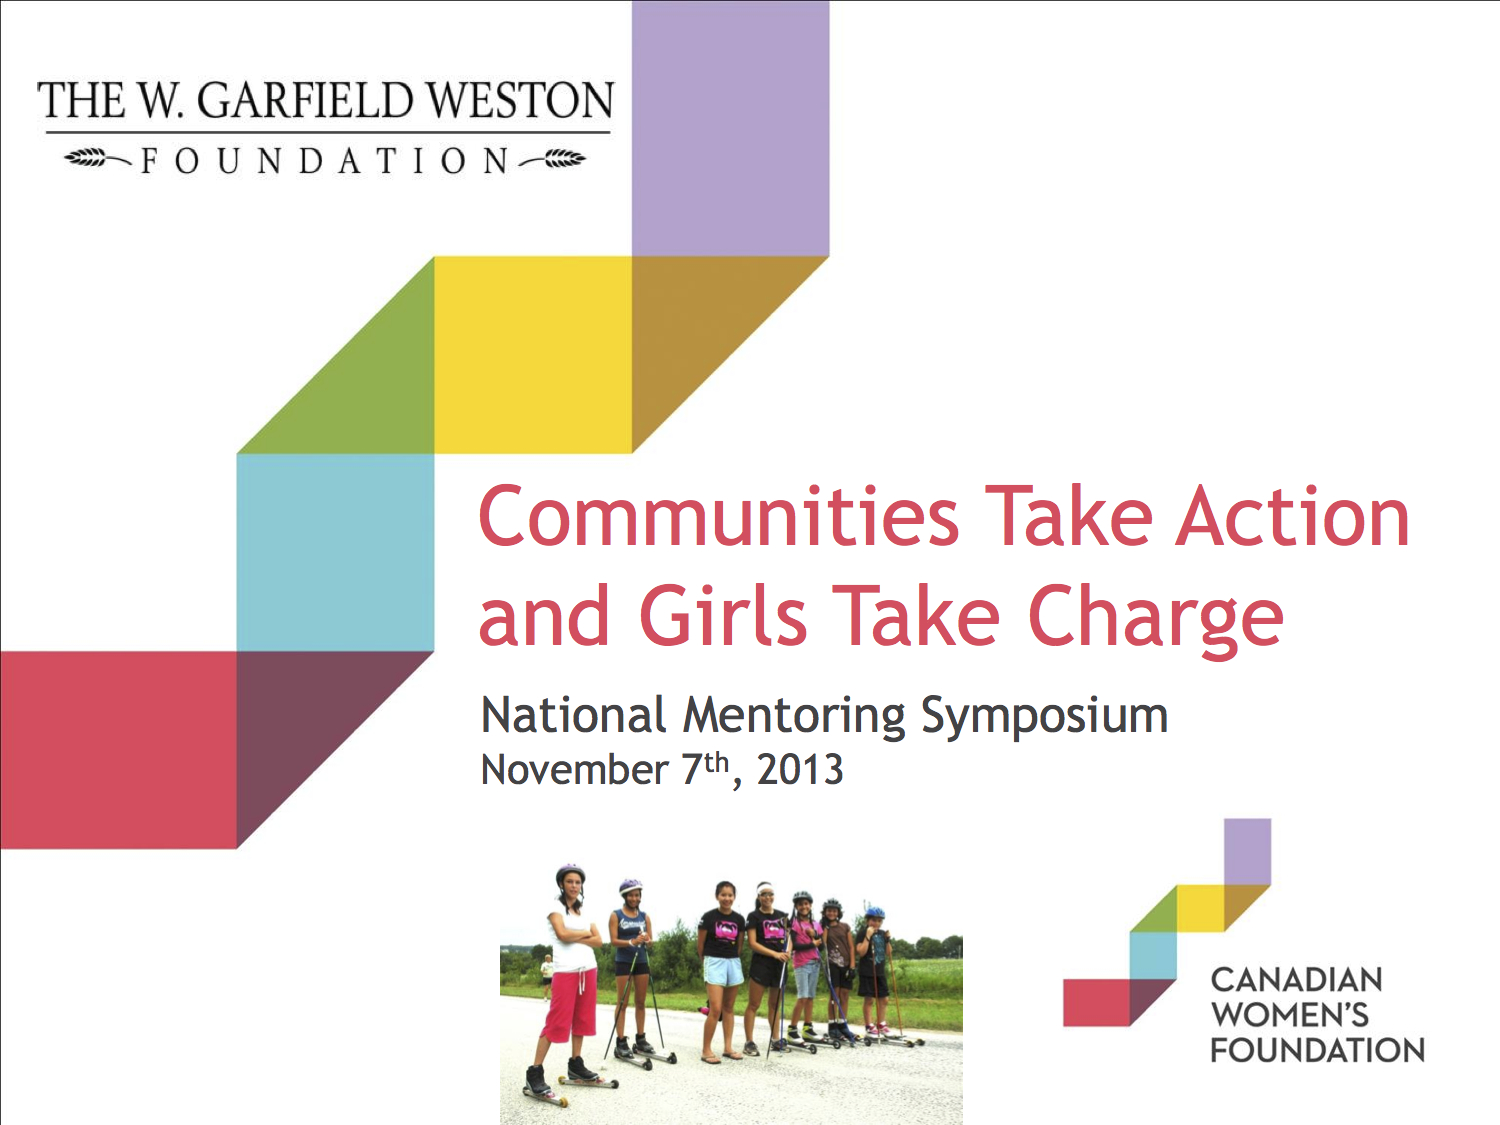 Communities Take Action and Girls Take Charge: Community-Based Approaches to Girls Group Mentoring in Canada